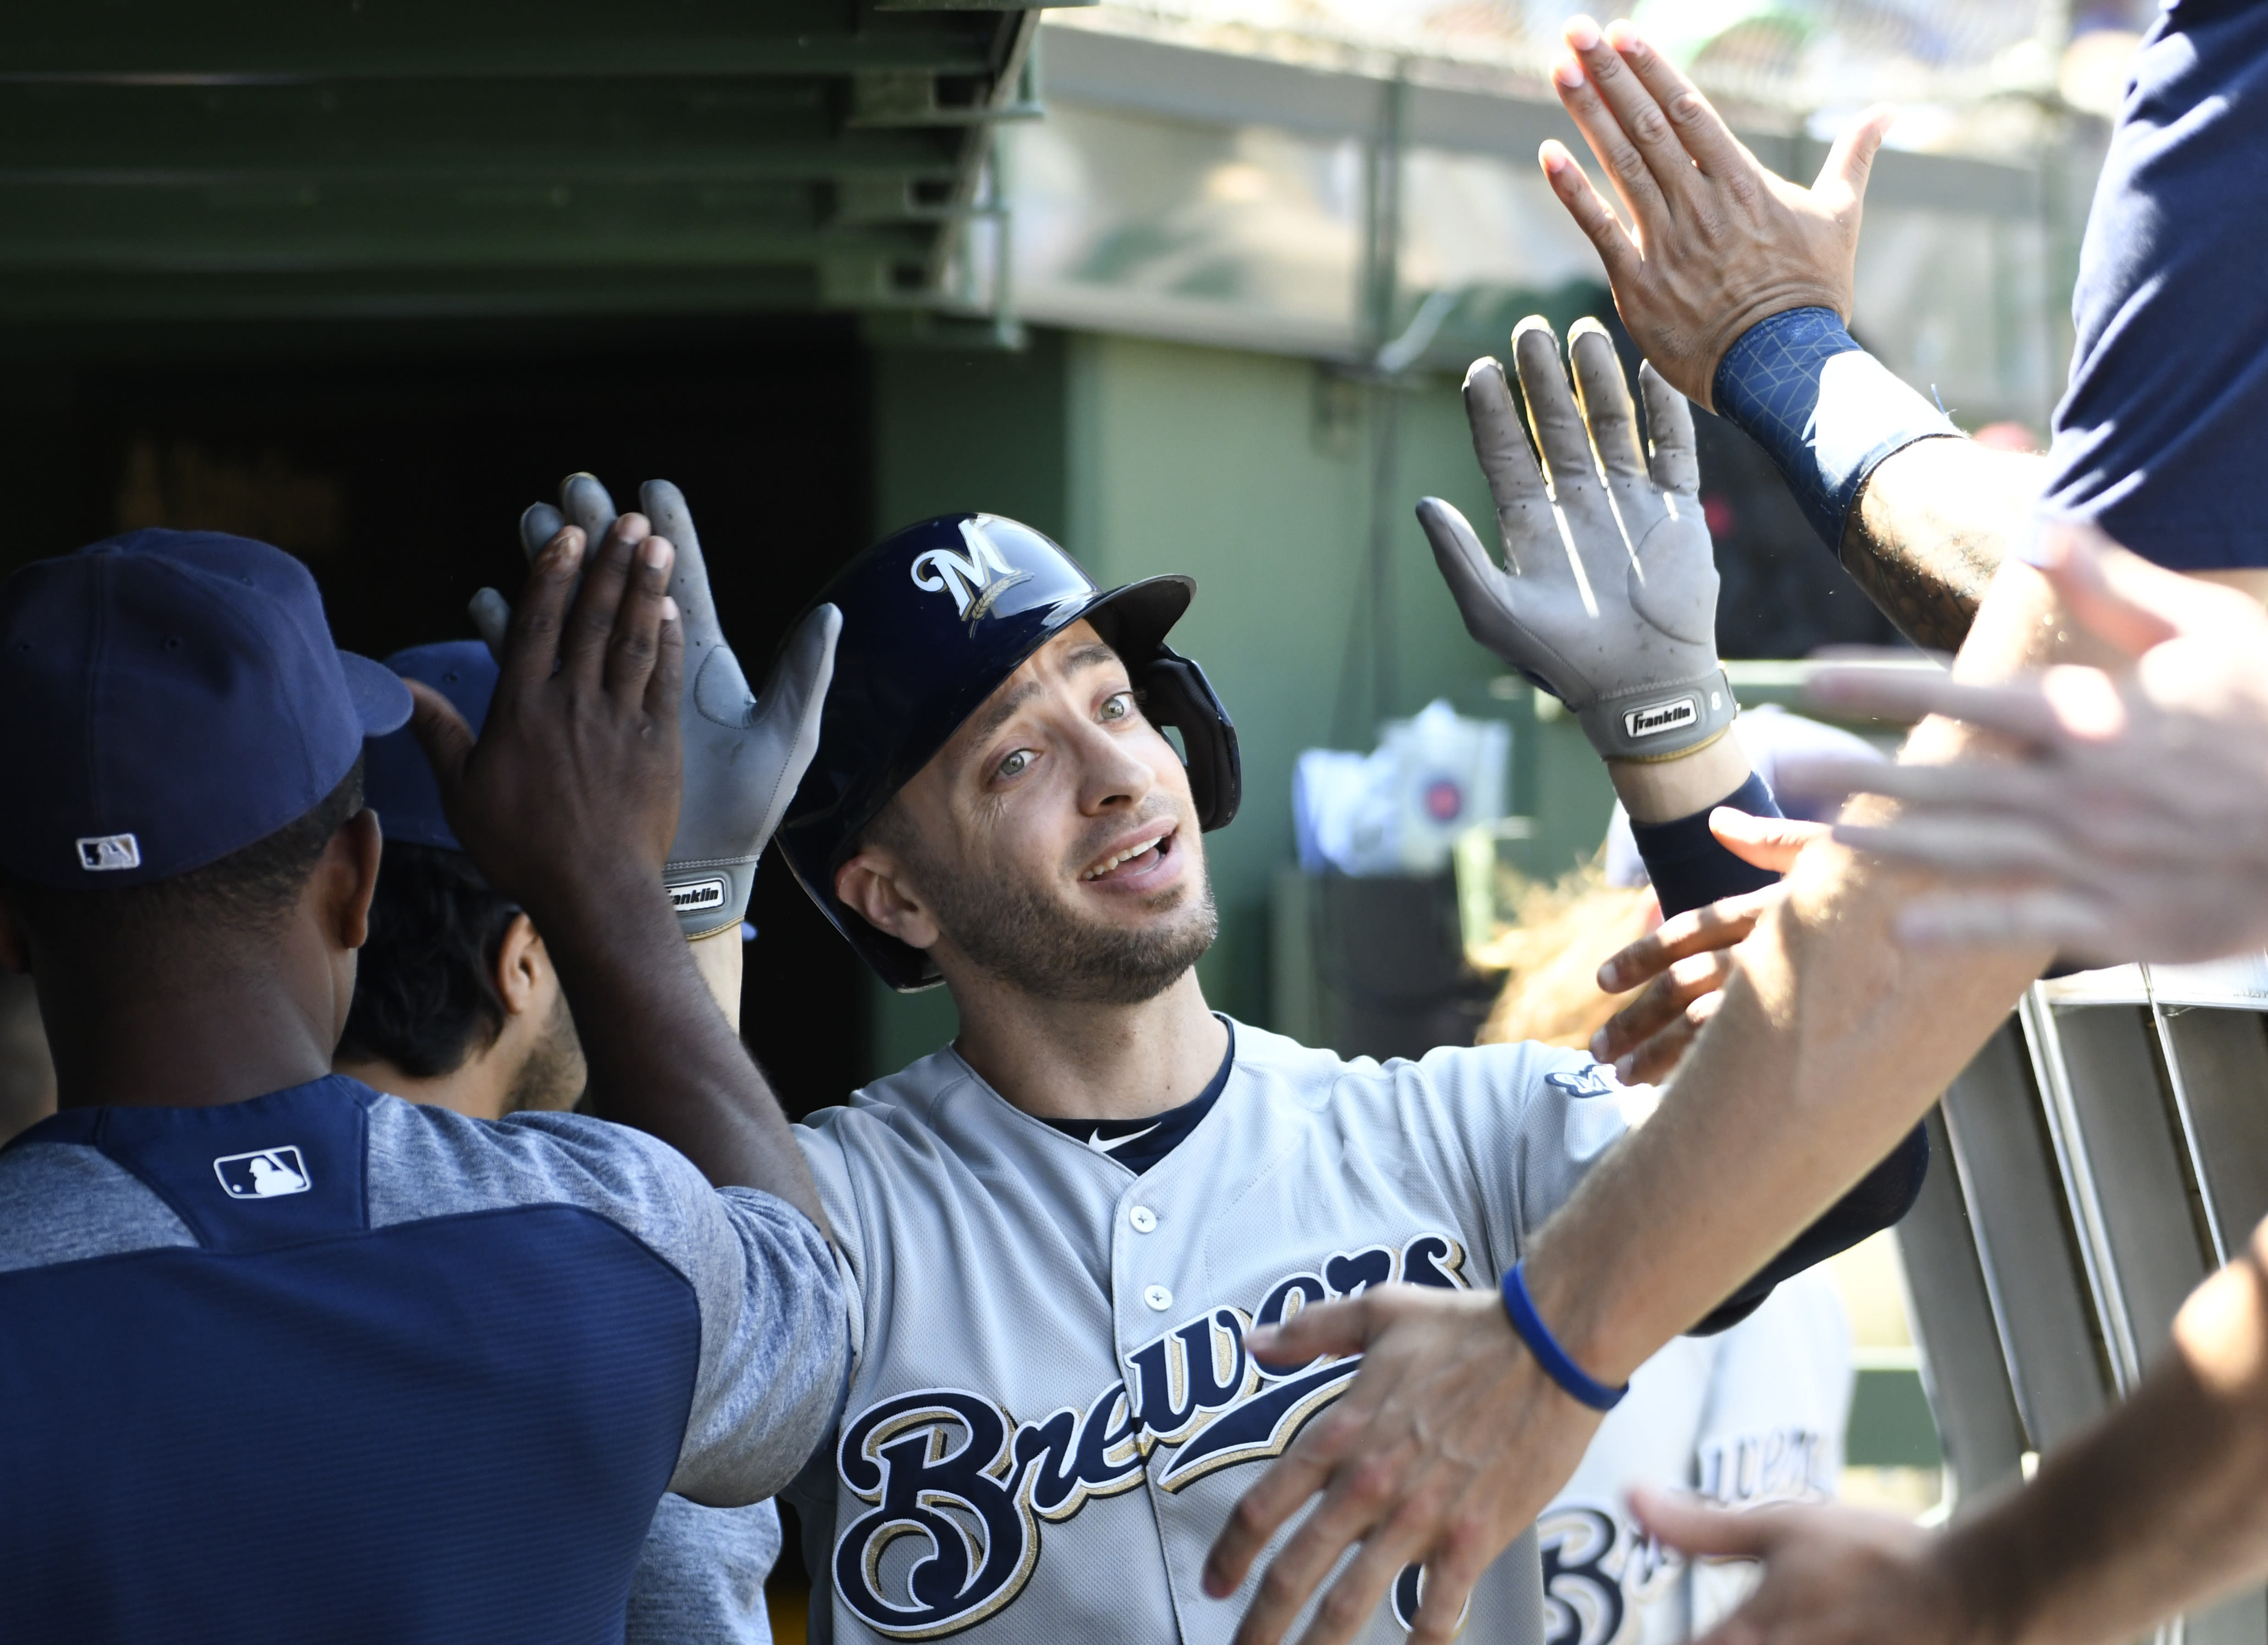 Milwaukee Brewers' Ryan Braun, center, is greeted in the dugout after hitting a home run against the Chicago Cubs during the second inning of a baseball game, Friday, Aug. 2, 2019, in Chicago. (AP Photo/David Banks)